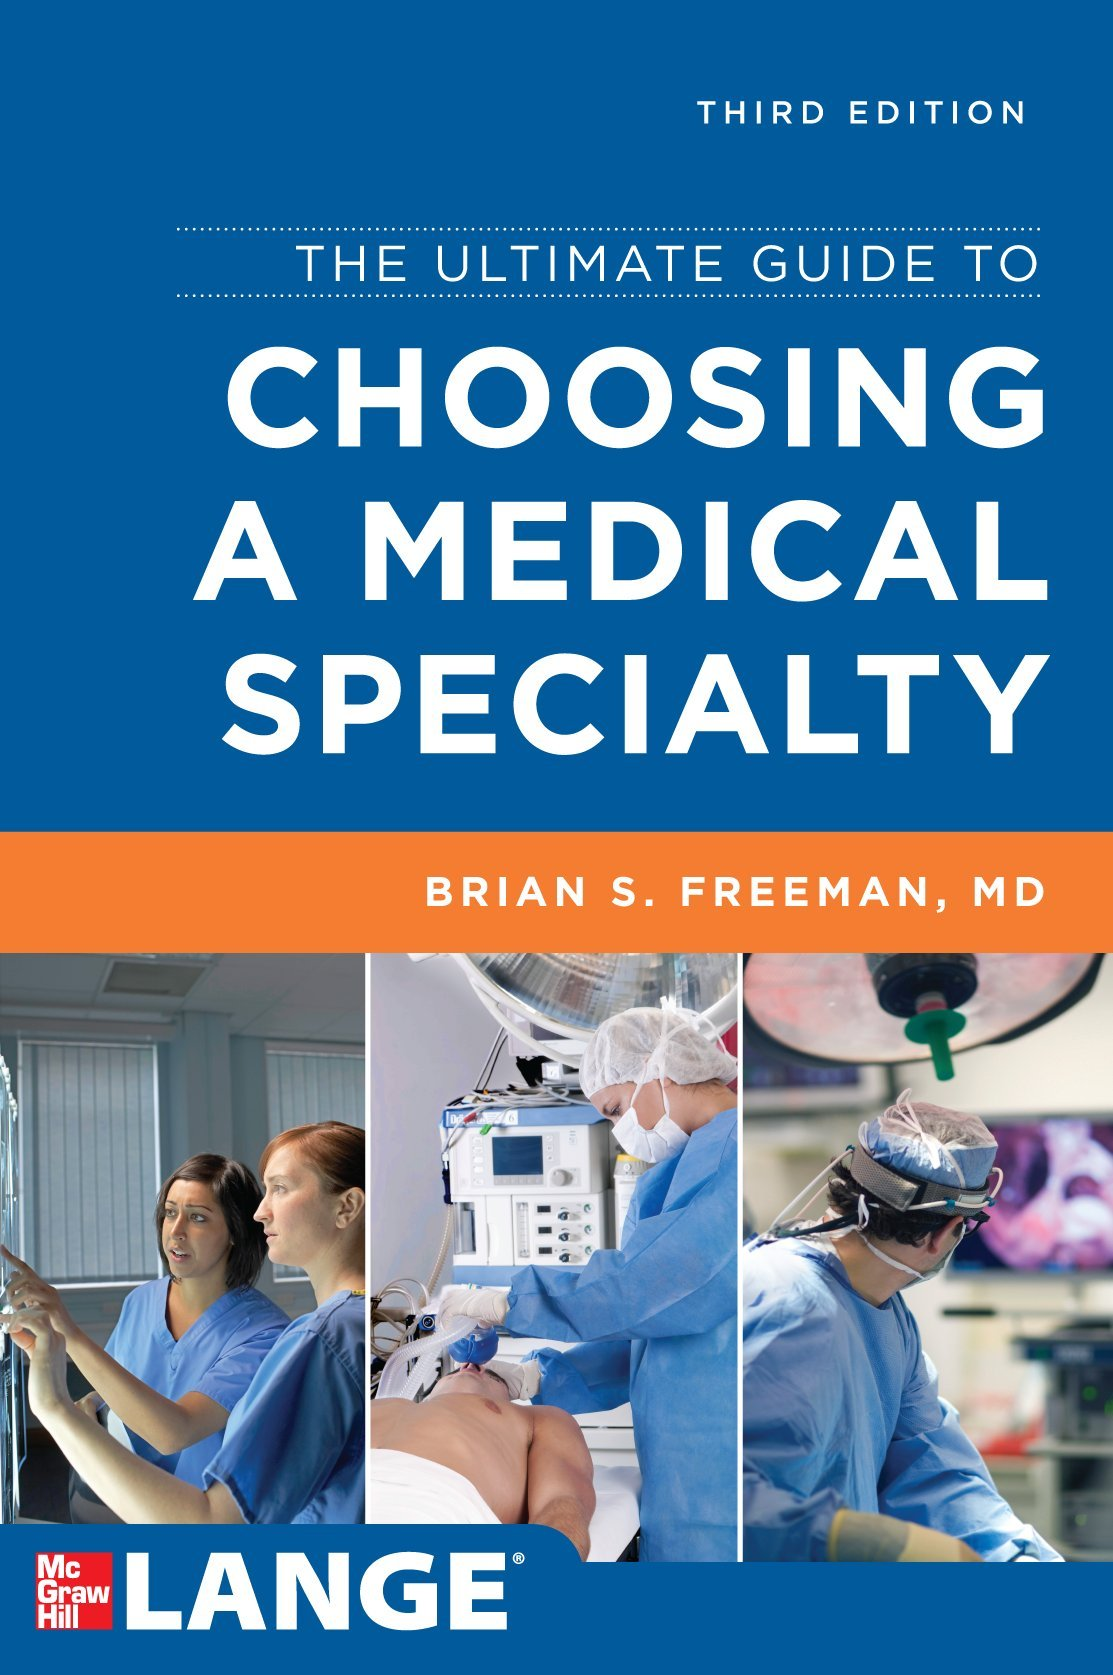 The Ultimate Guide To Choosing A Medical Specialty  Usmle Review Books